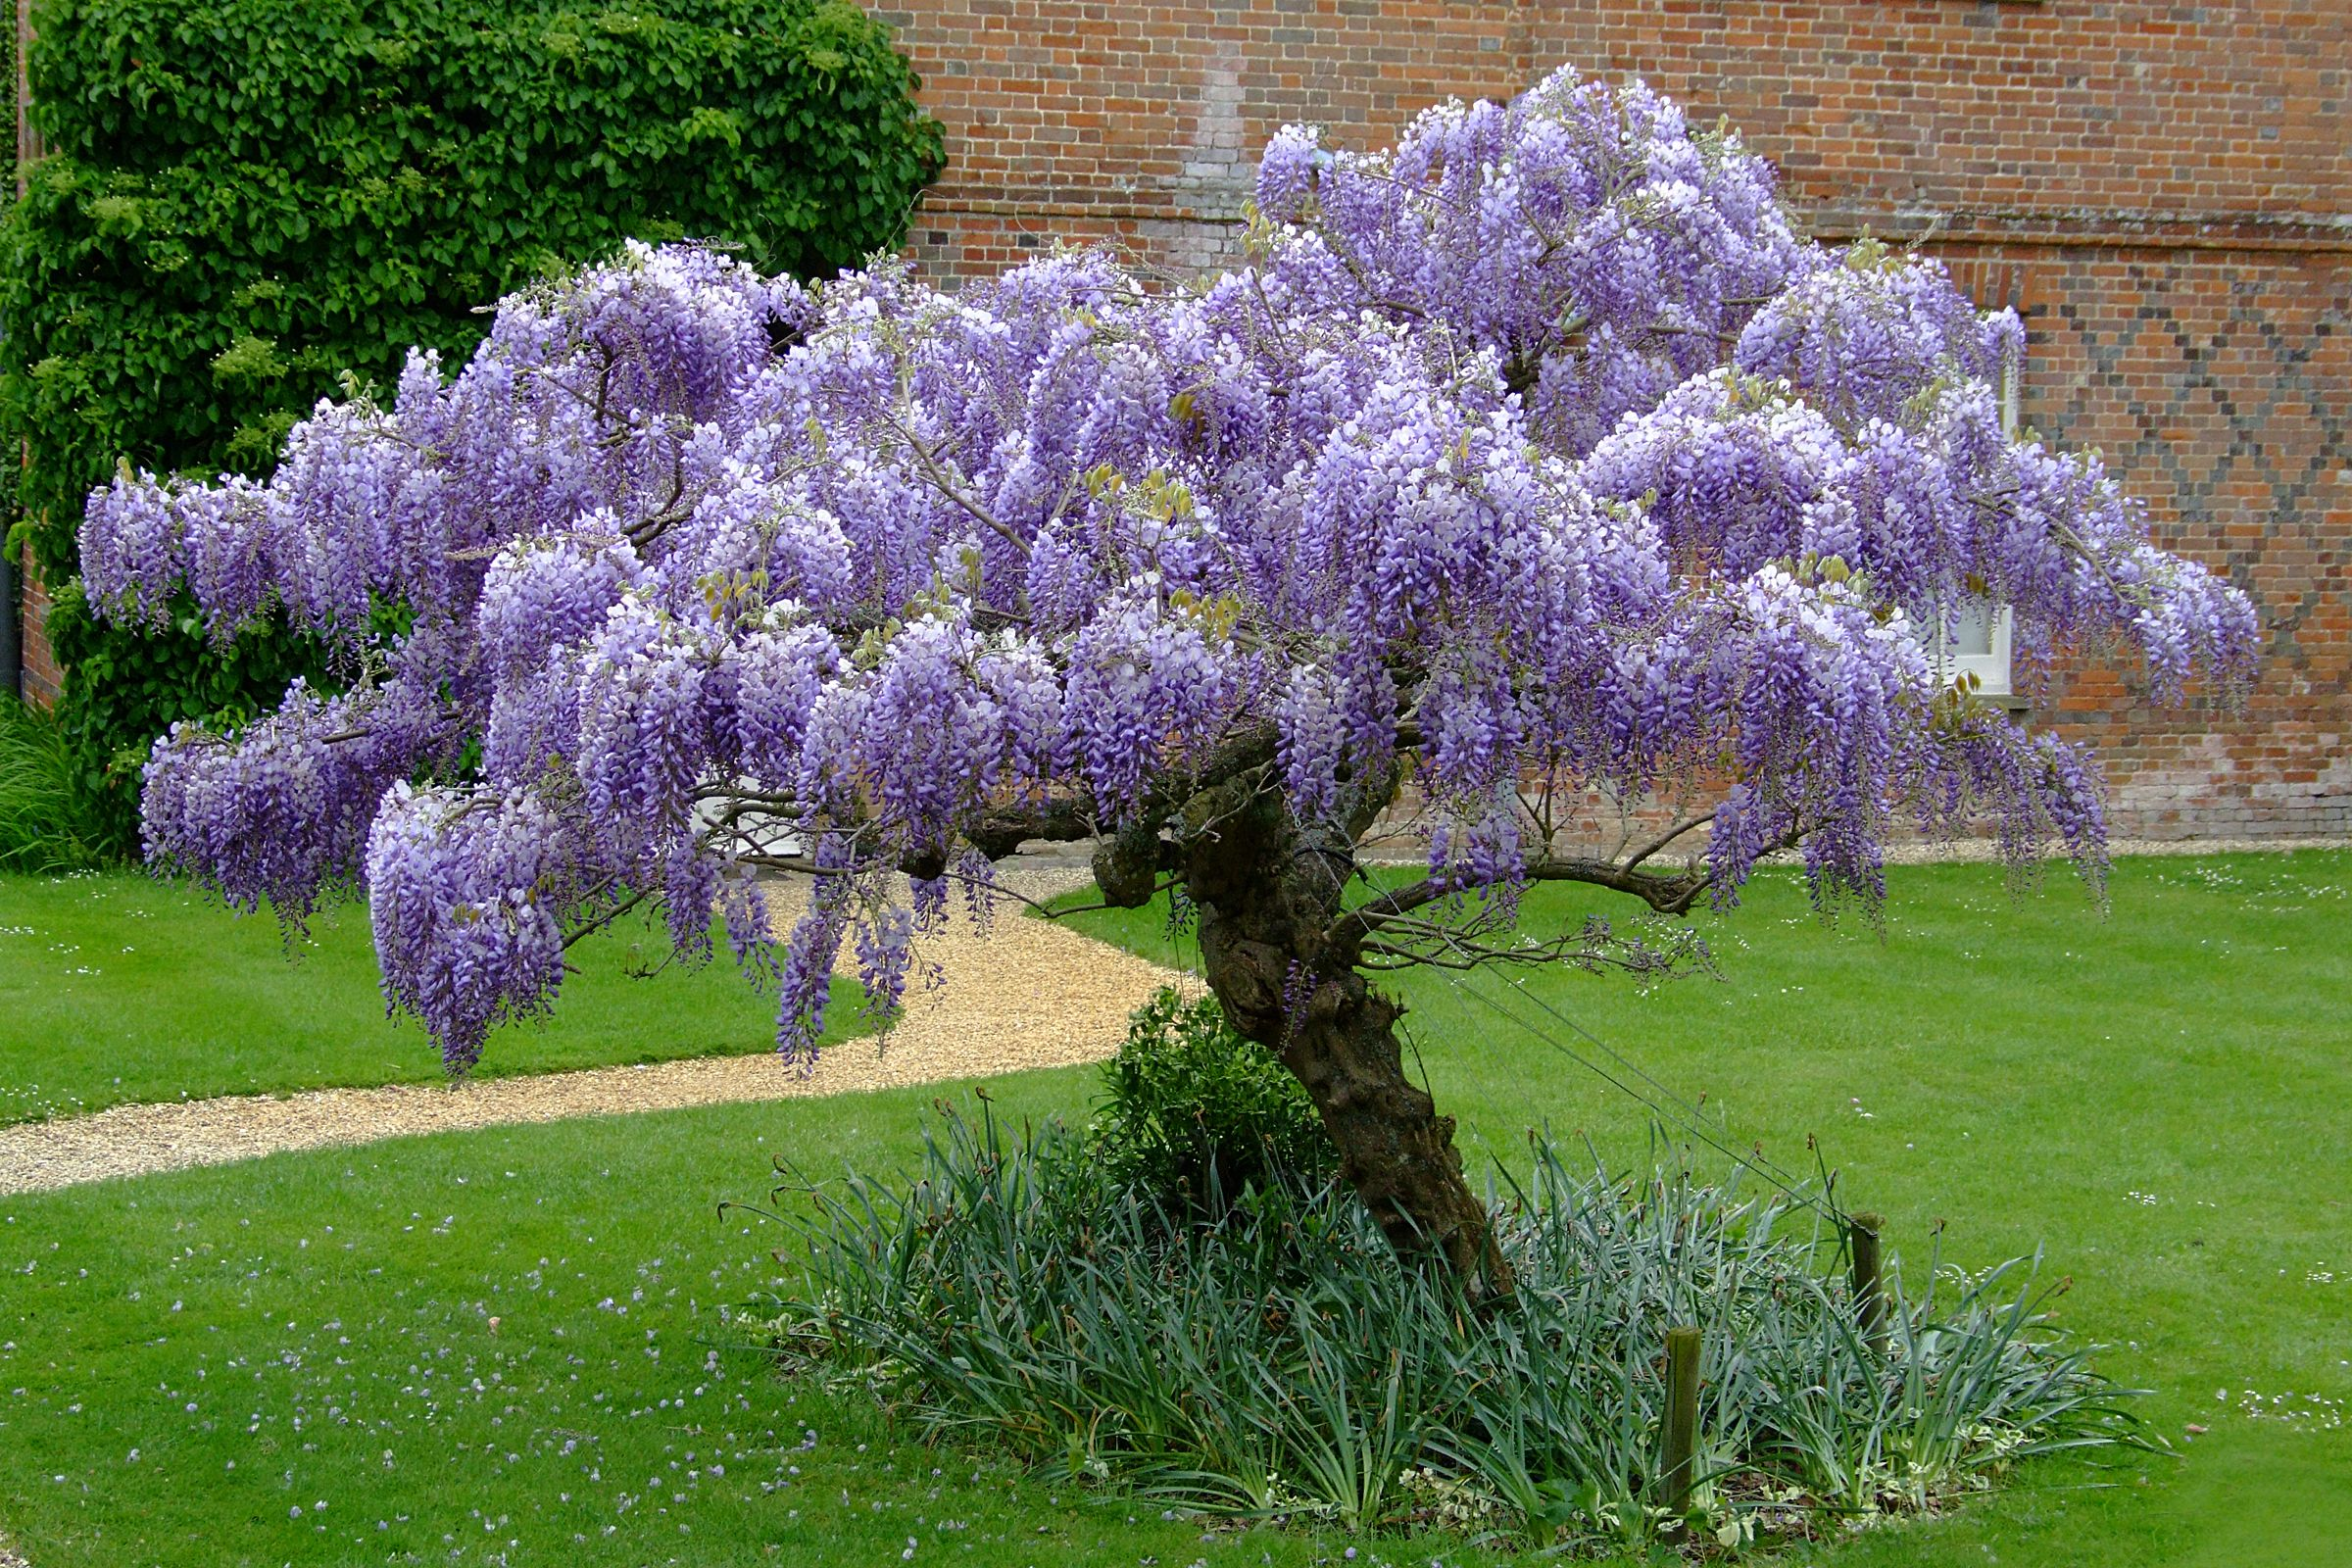 How To Plant Prune And Care For Wisterias Wisteria Tree Garden Trees Garden Vines